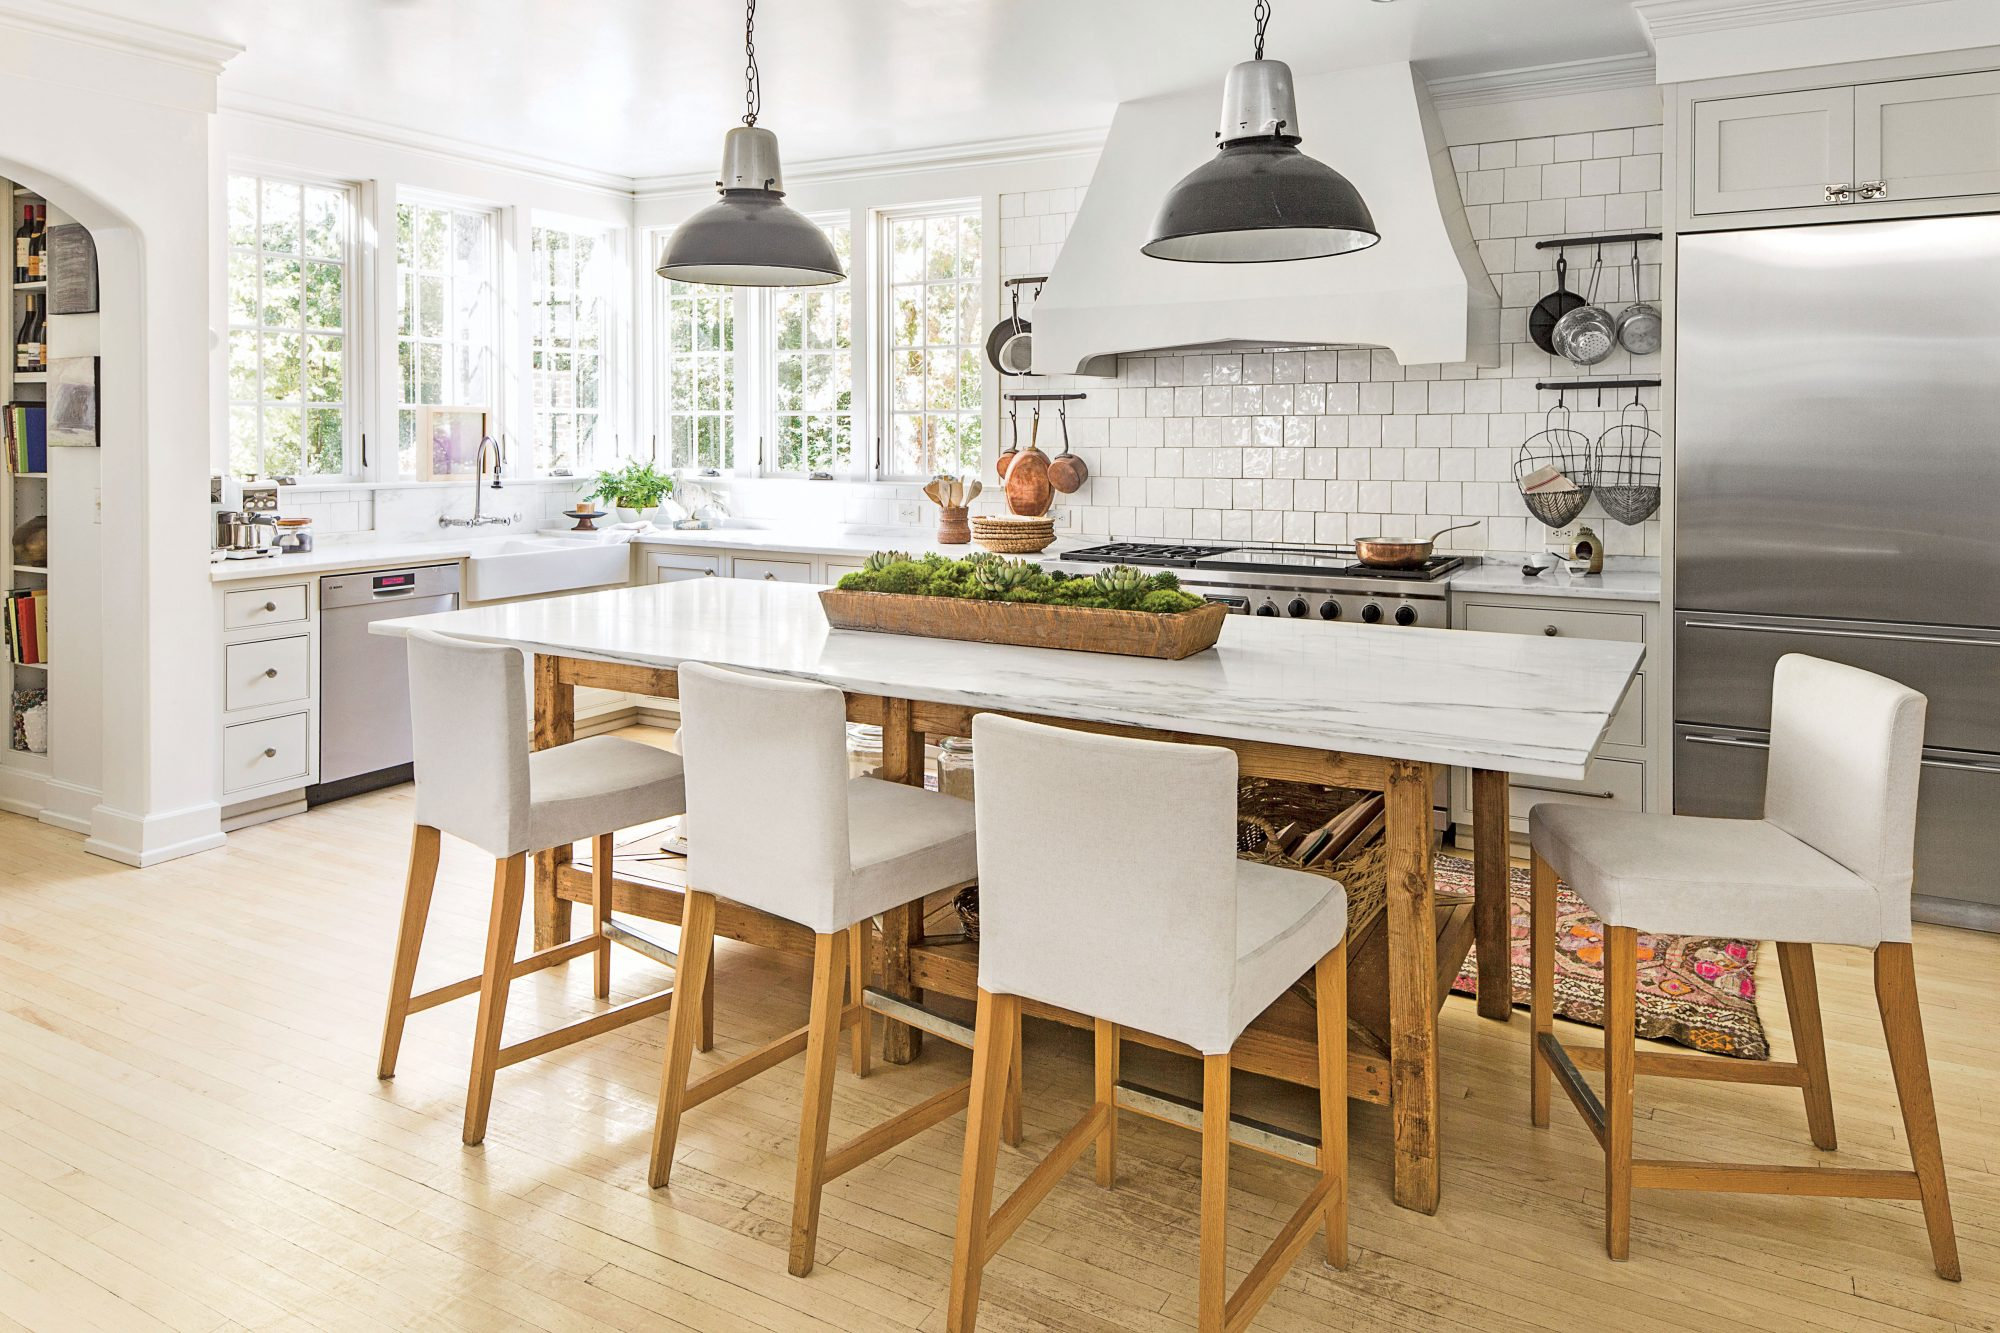 Calm & Current Natural Kitchen by Cyndy Cantly